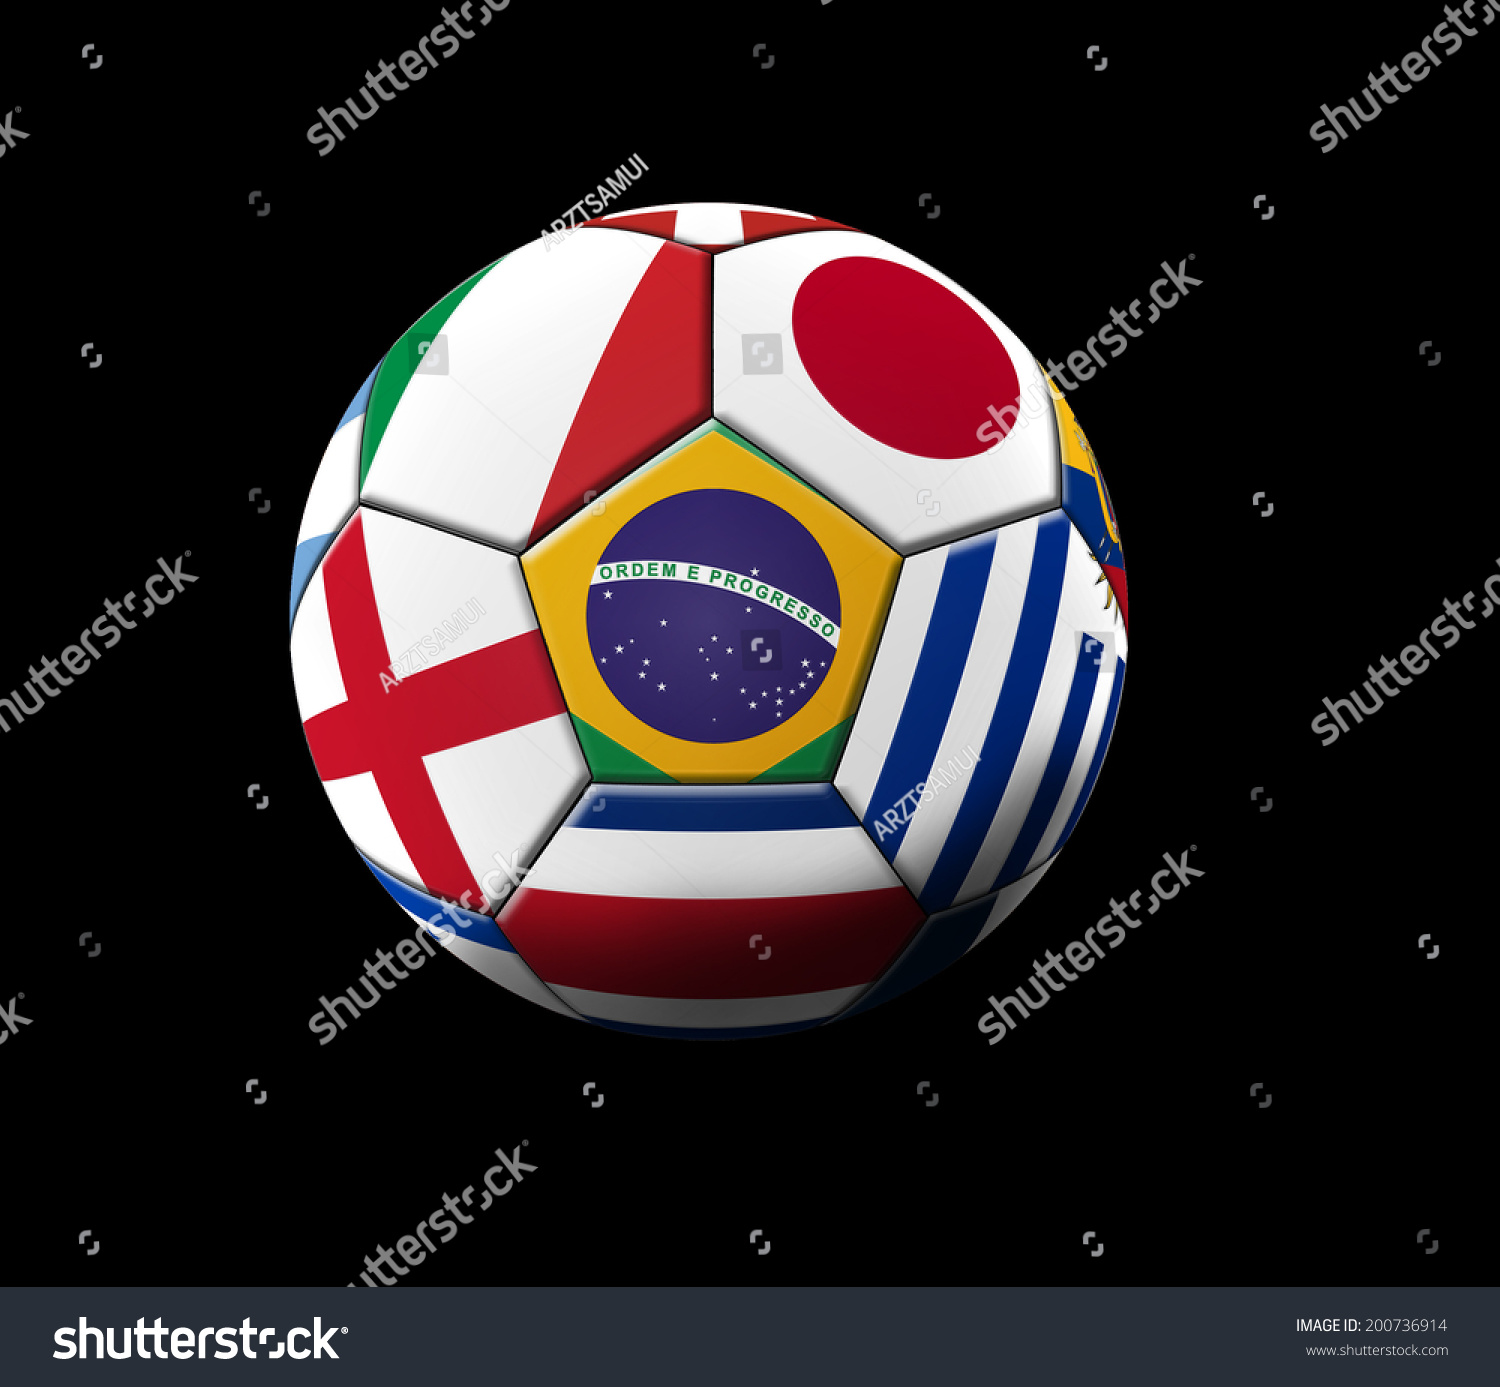 soccer artwork championship brazil stock illustration 200736914